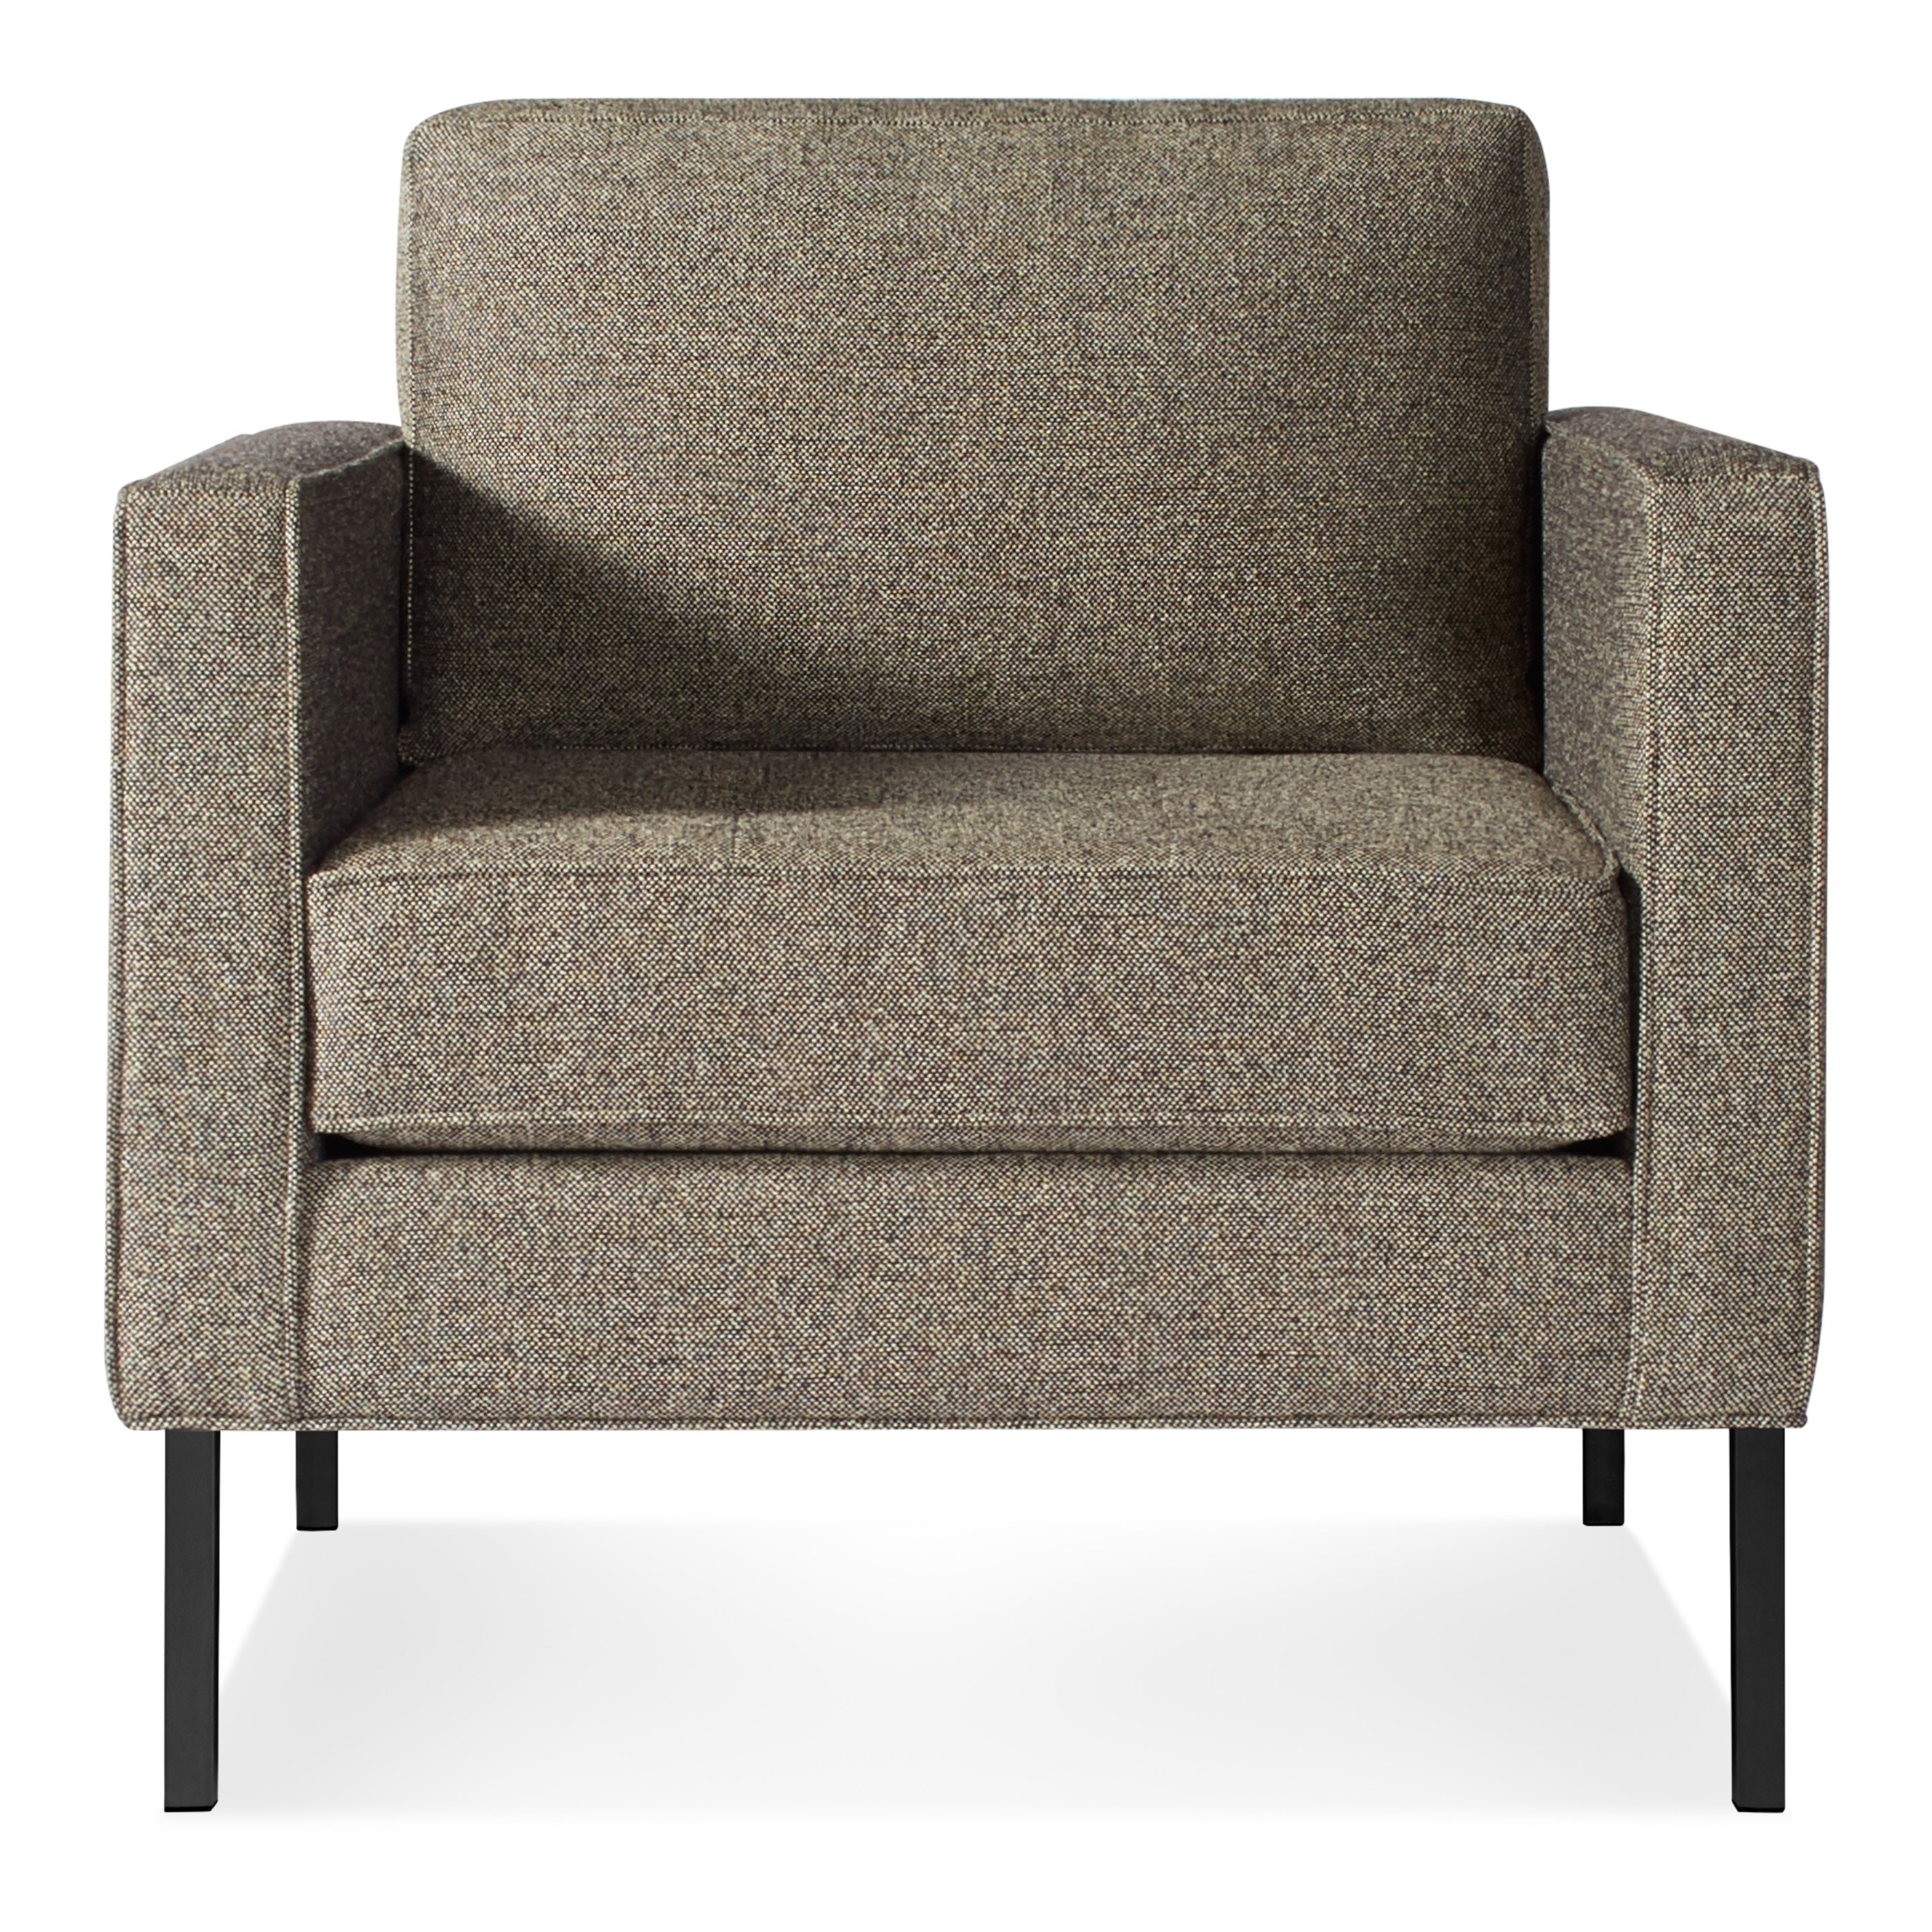 Most Up To Date Chaise Lounge Chairs In Canada Within Convertible Chair : Bedroom Curved Lounge Sofa Double Chaise (View 8 of 15)